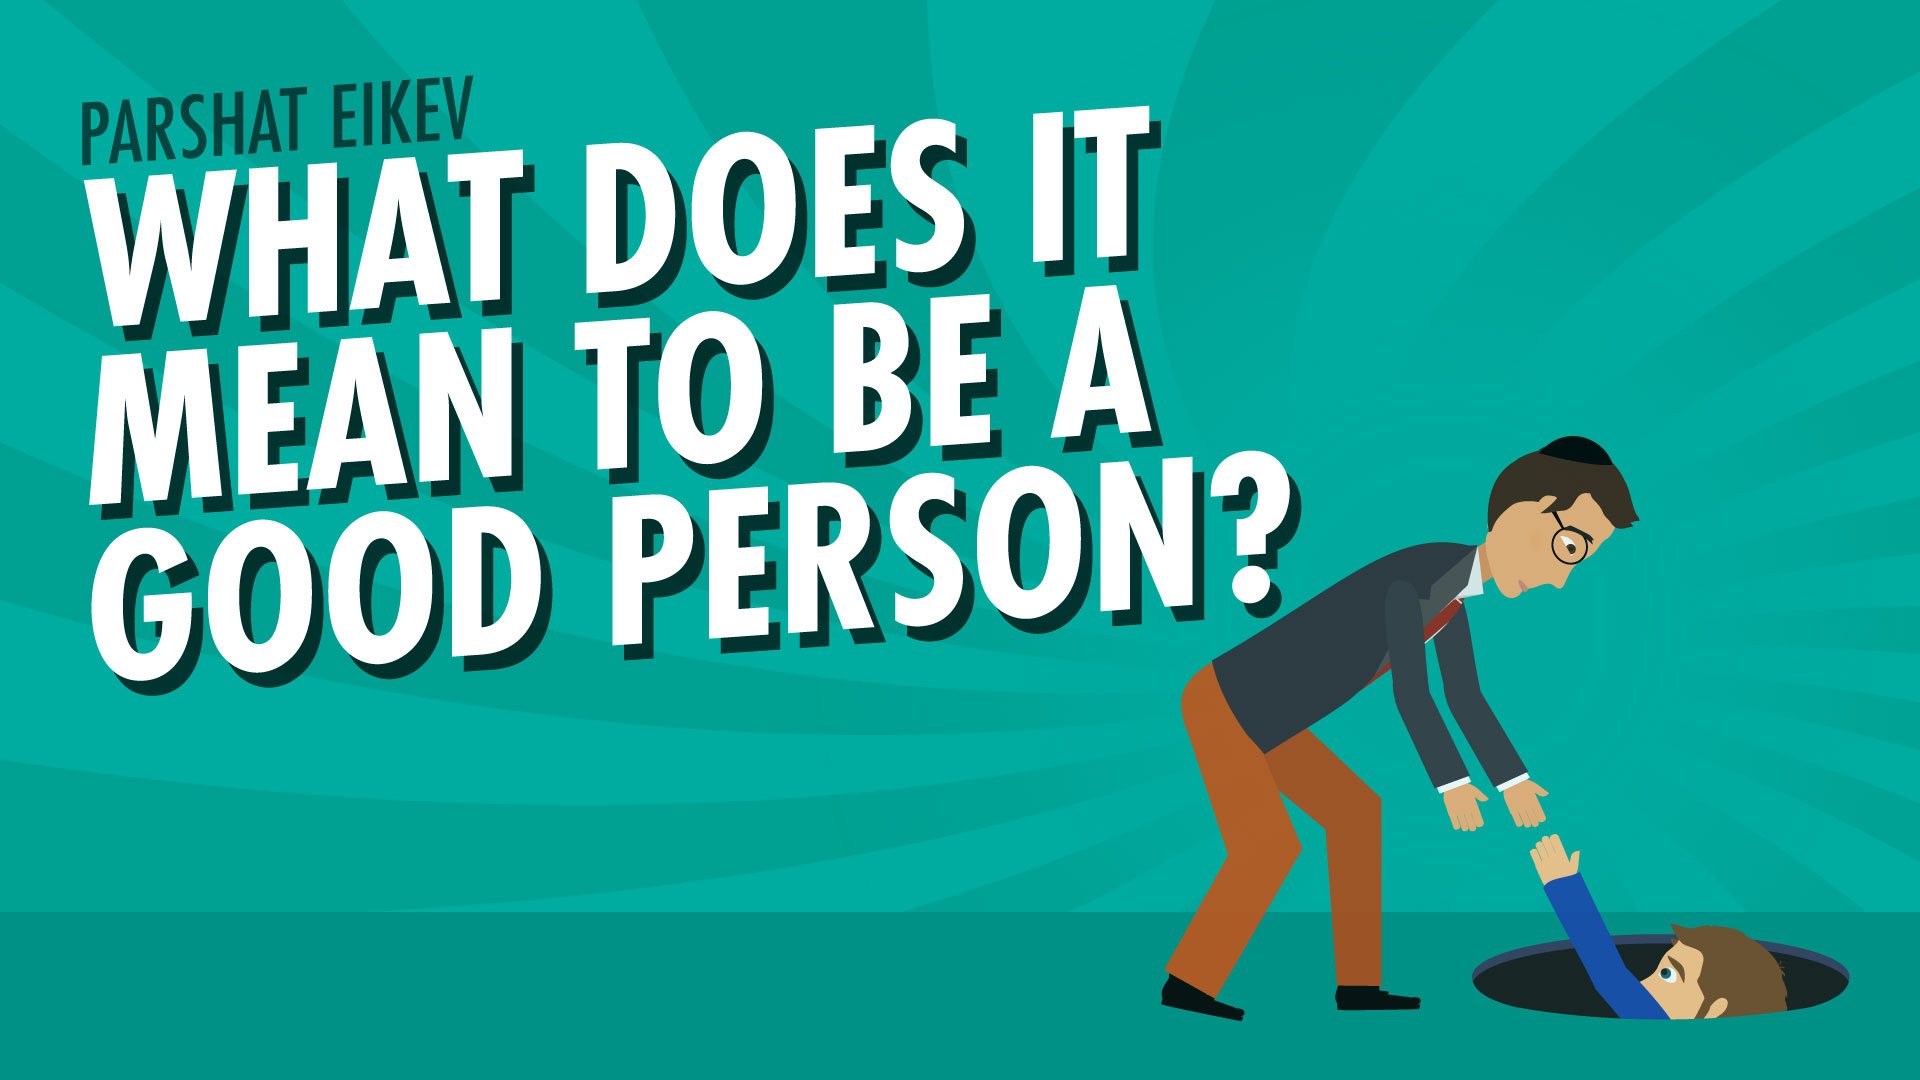 Parshat Eikev | What Does It Mean To Be A Good Person?